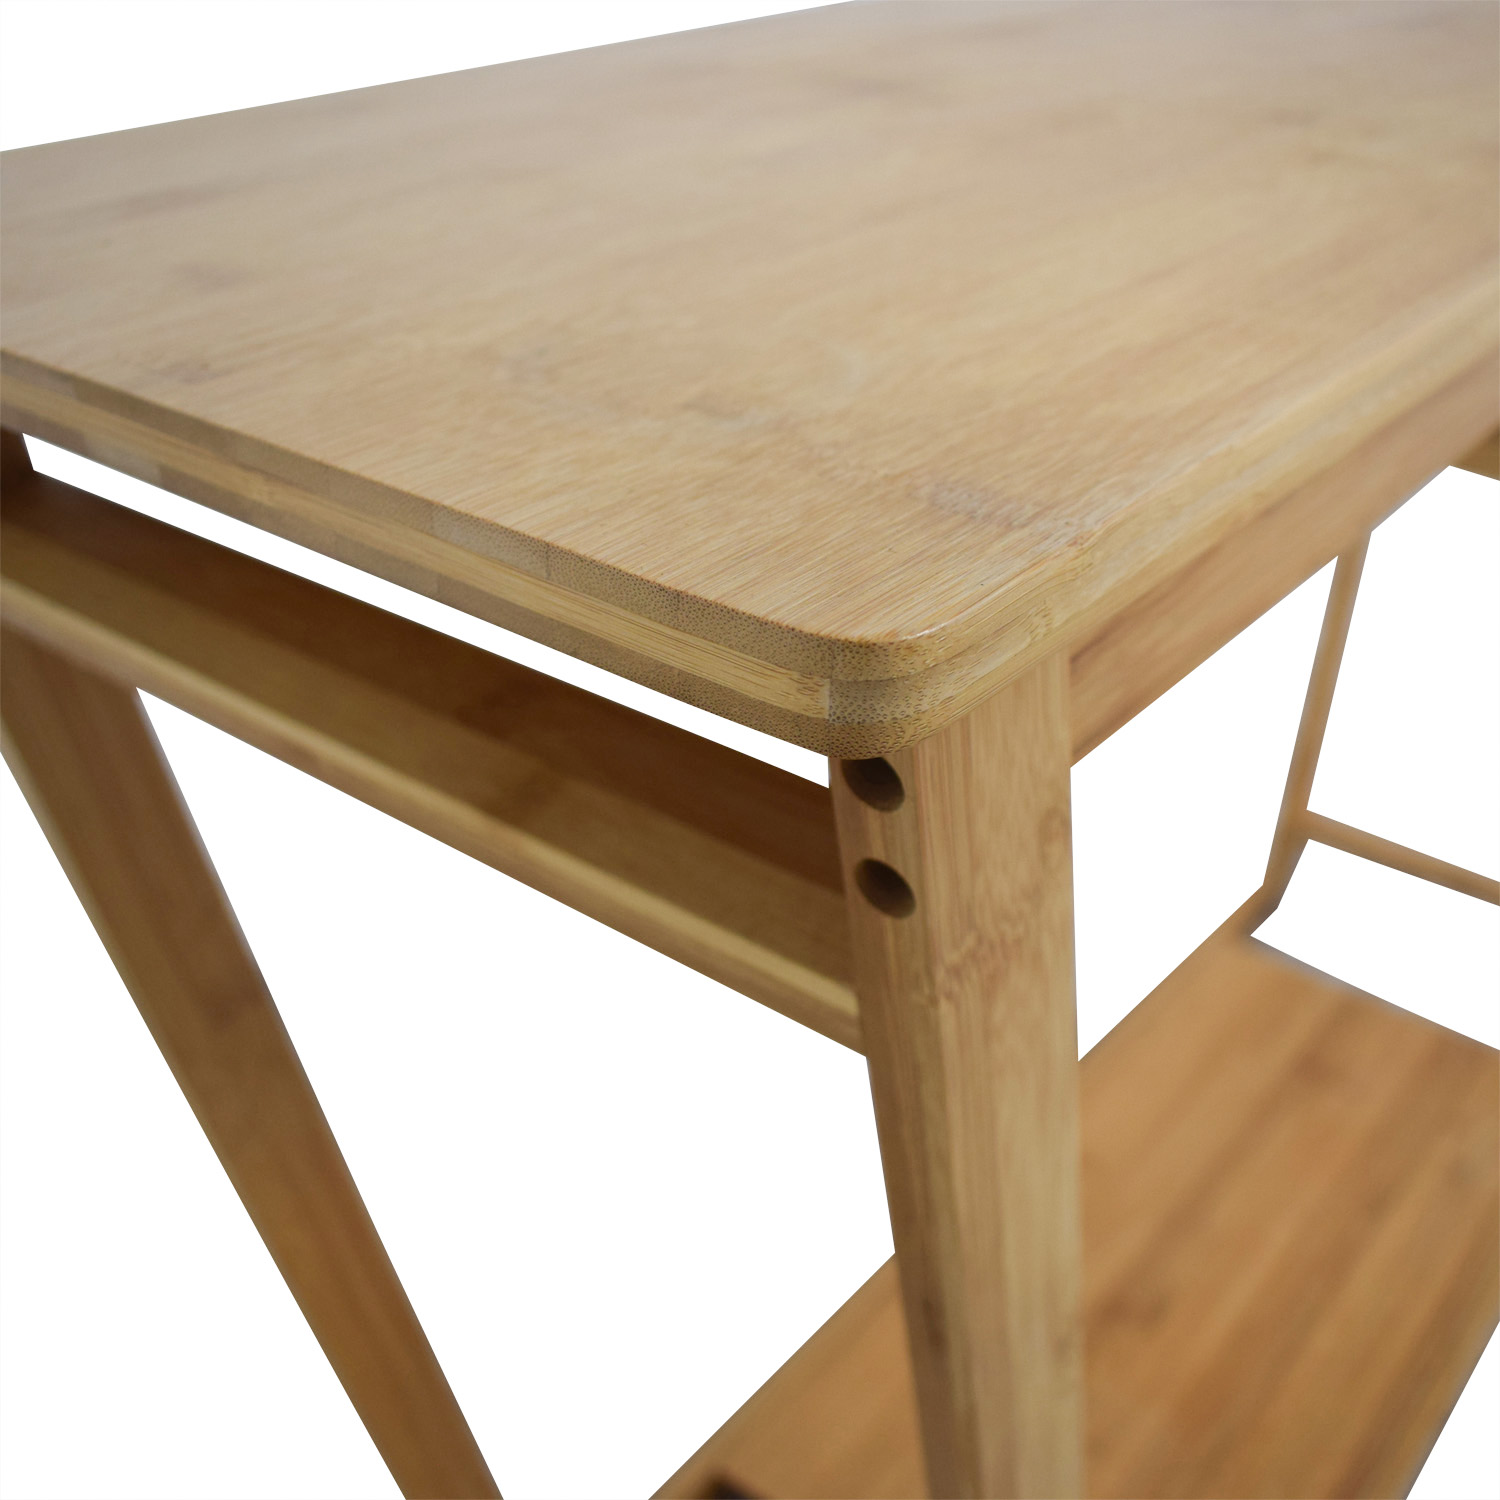 Bamboo Wood Single Drawer Desk or Table used